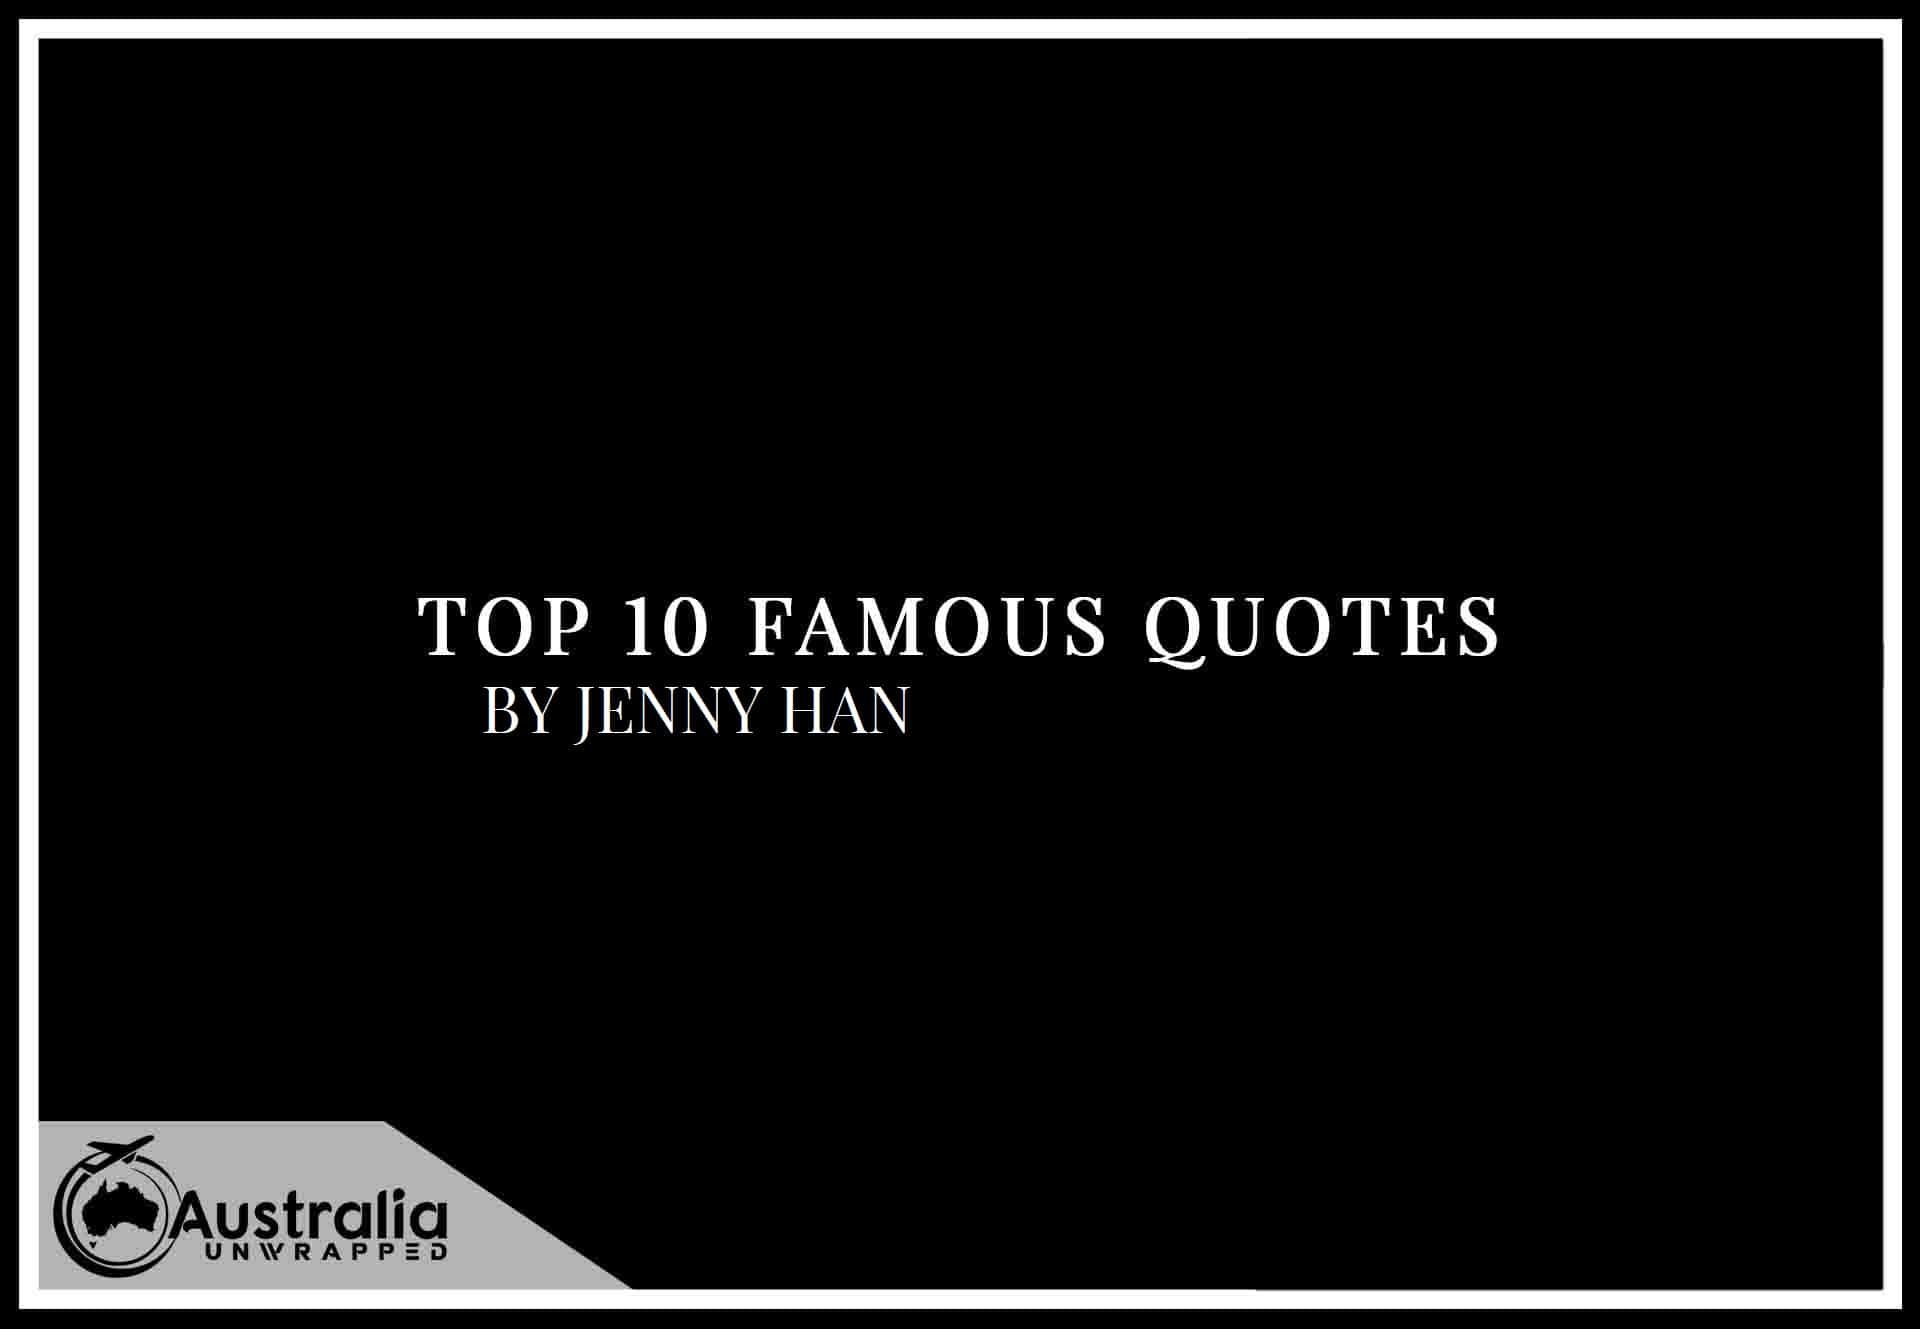 Top 10 Famous Quotes by Author Jenny Han